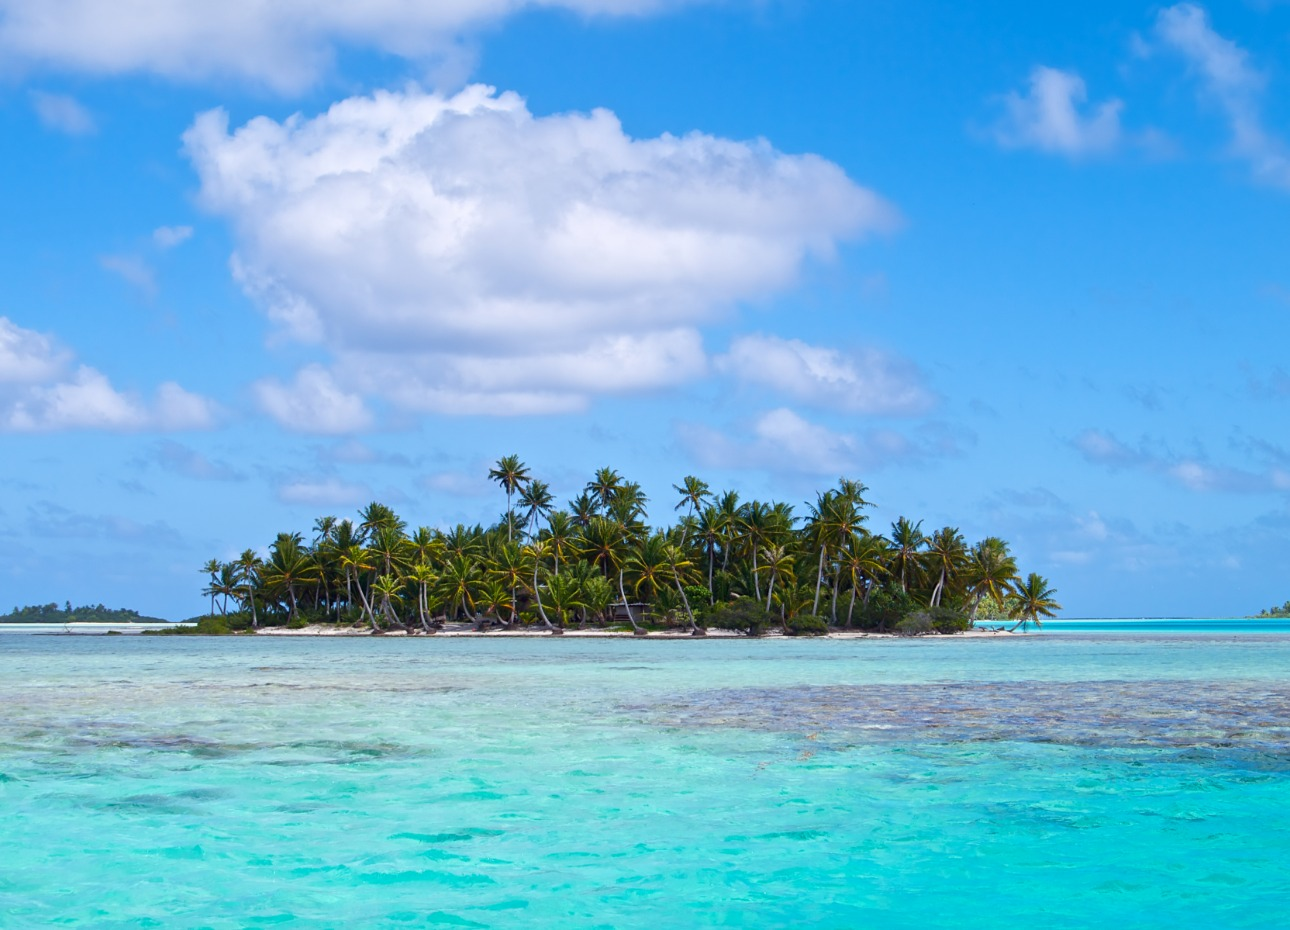 French Polynesia clear water and island image